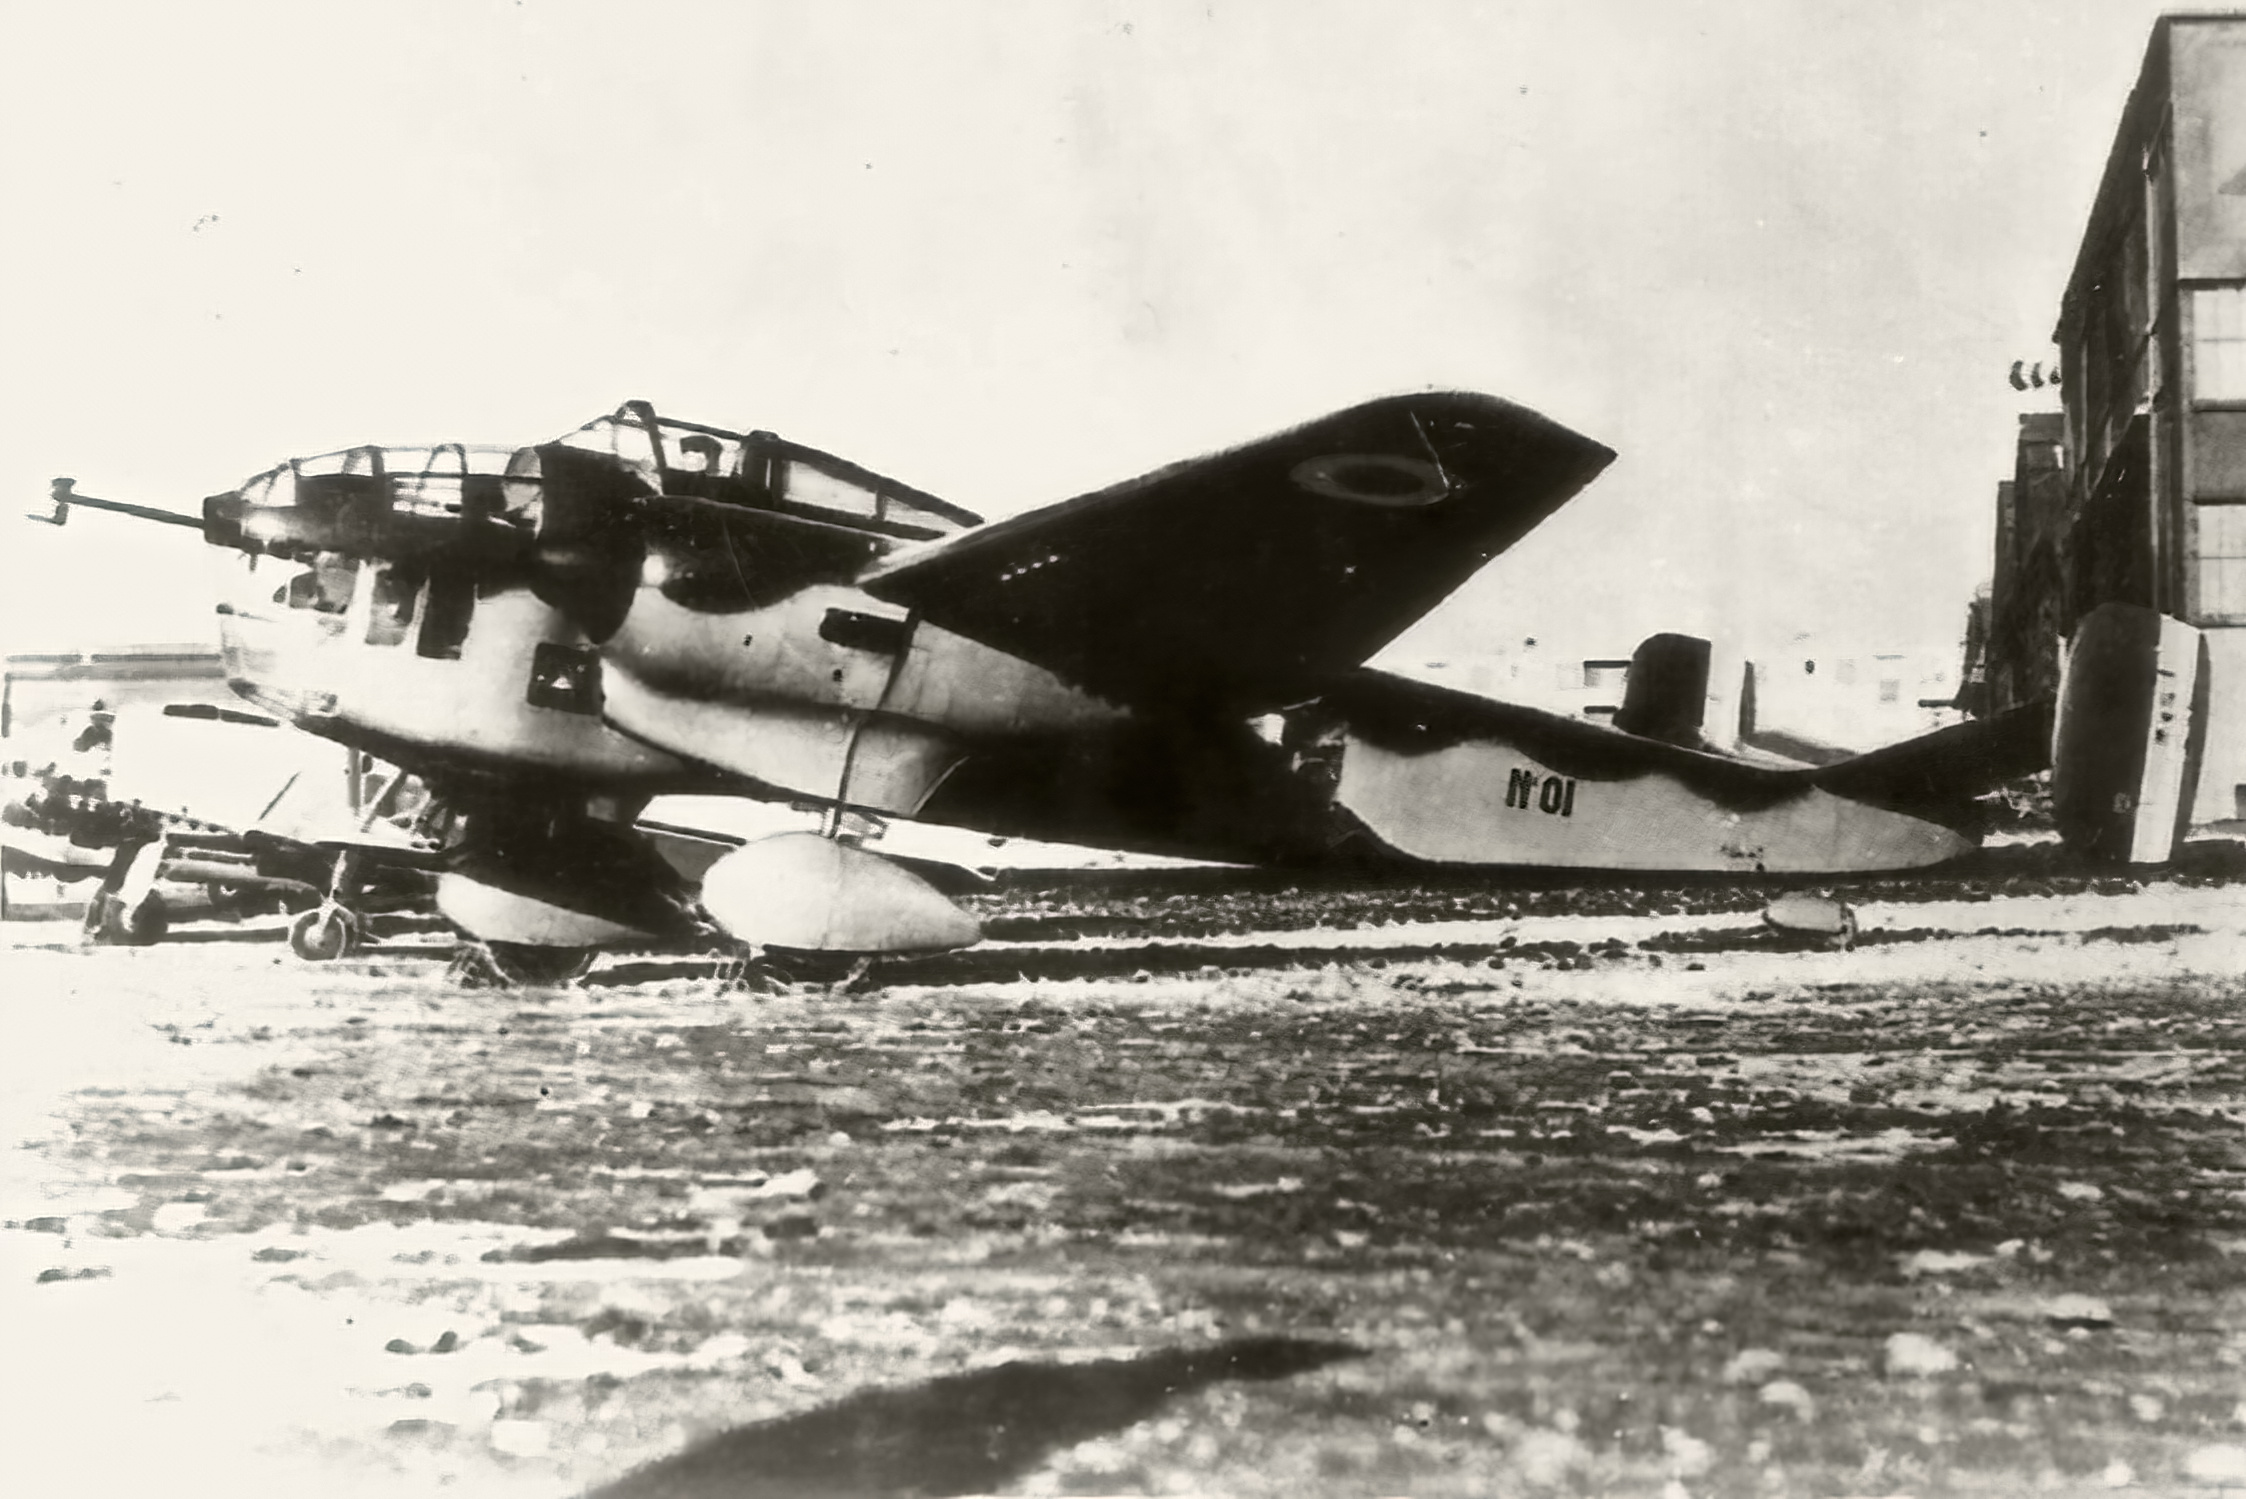 French Airforce SNCAC Hanriot NC.530 prototype No01 dispersal area Phoney War France 1939 ebay 01